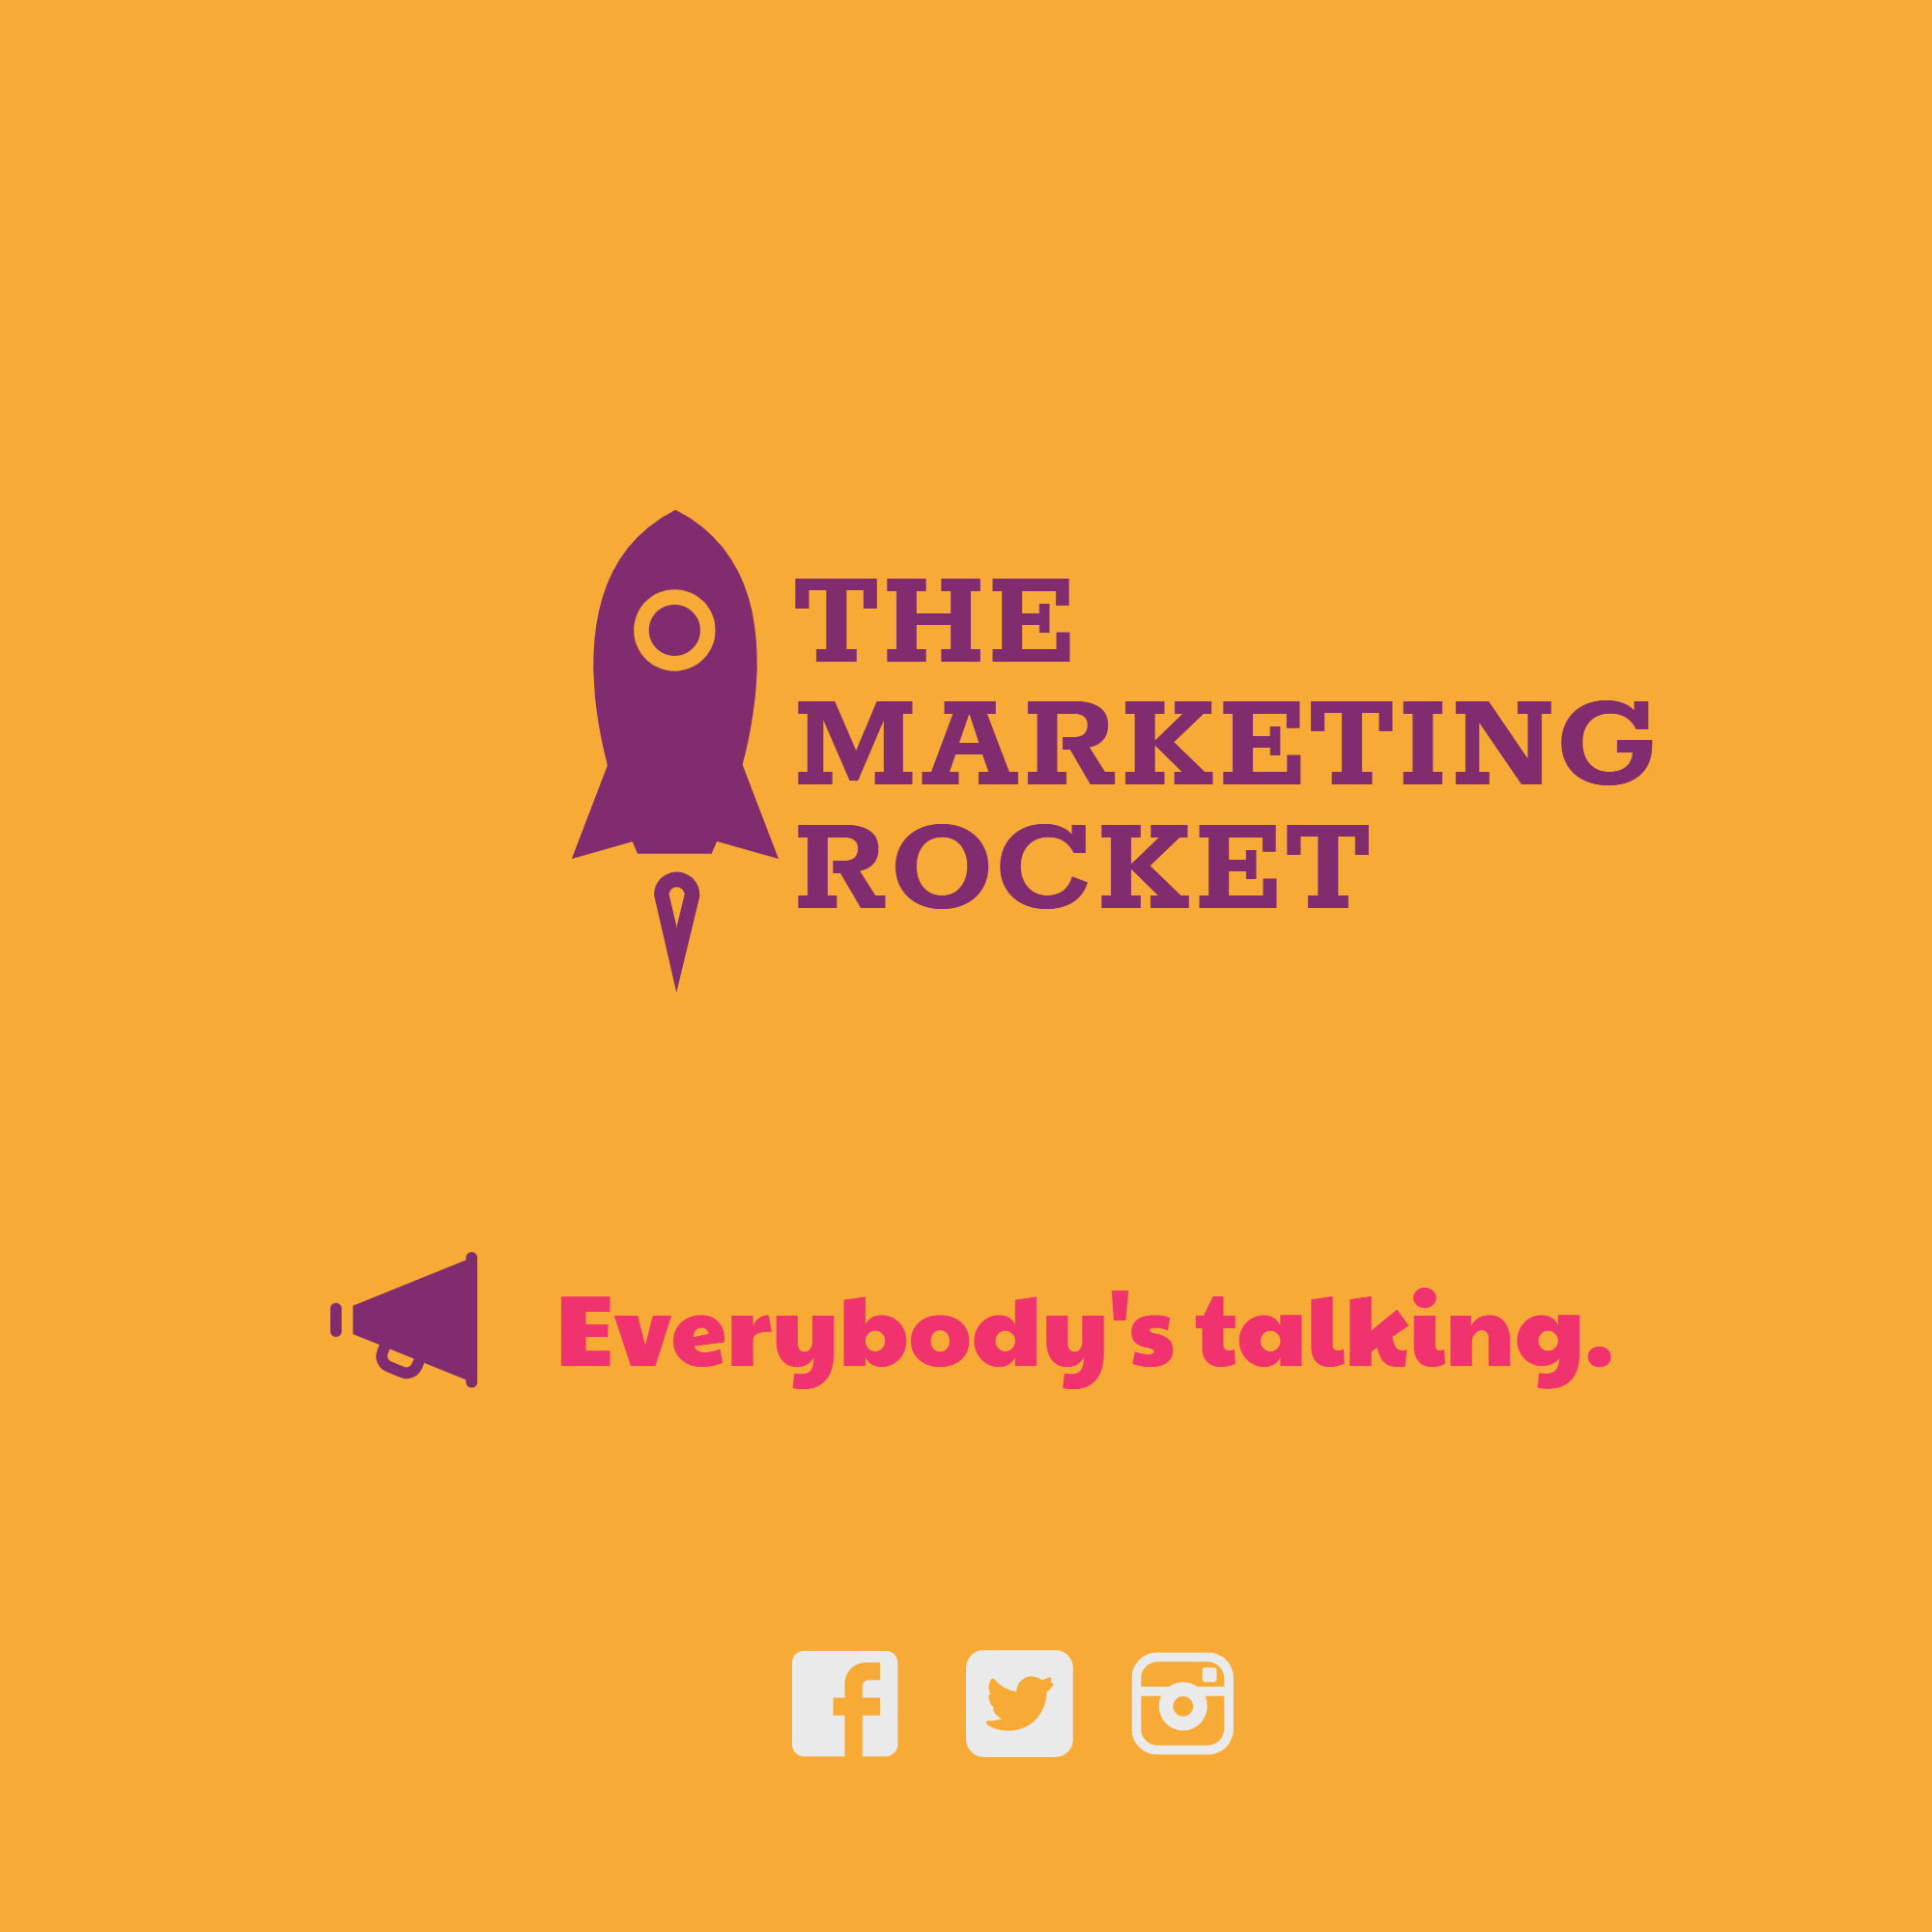 Social Media content cretion to capture & engage with followers - The Marketing Rocket - Taunton, Somerset - Wed Design & SEO Marketing Agency